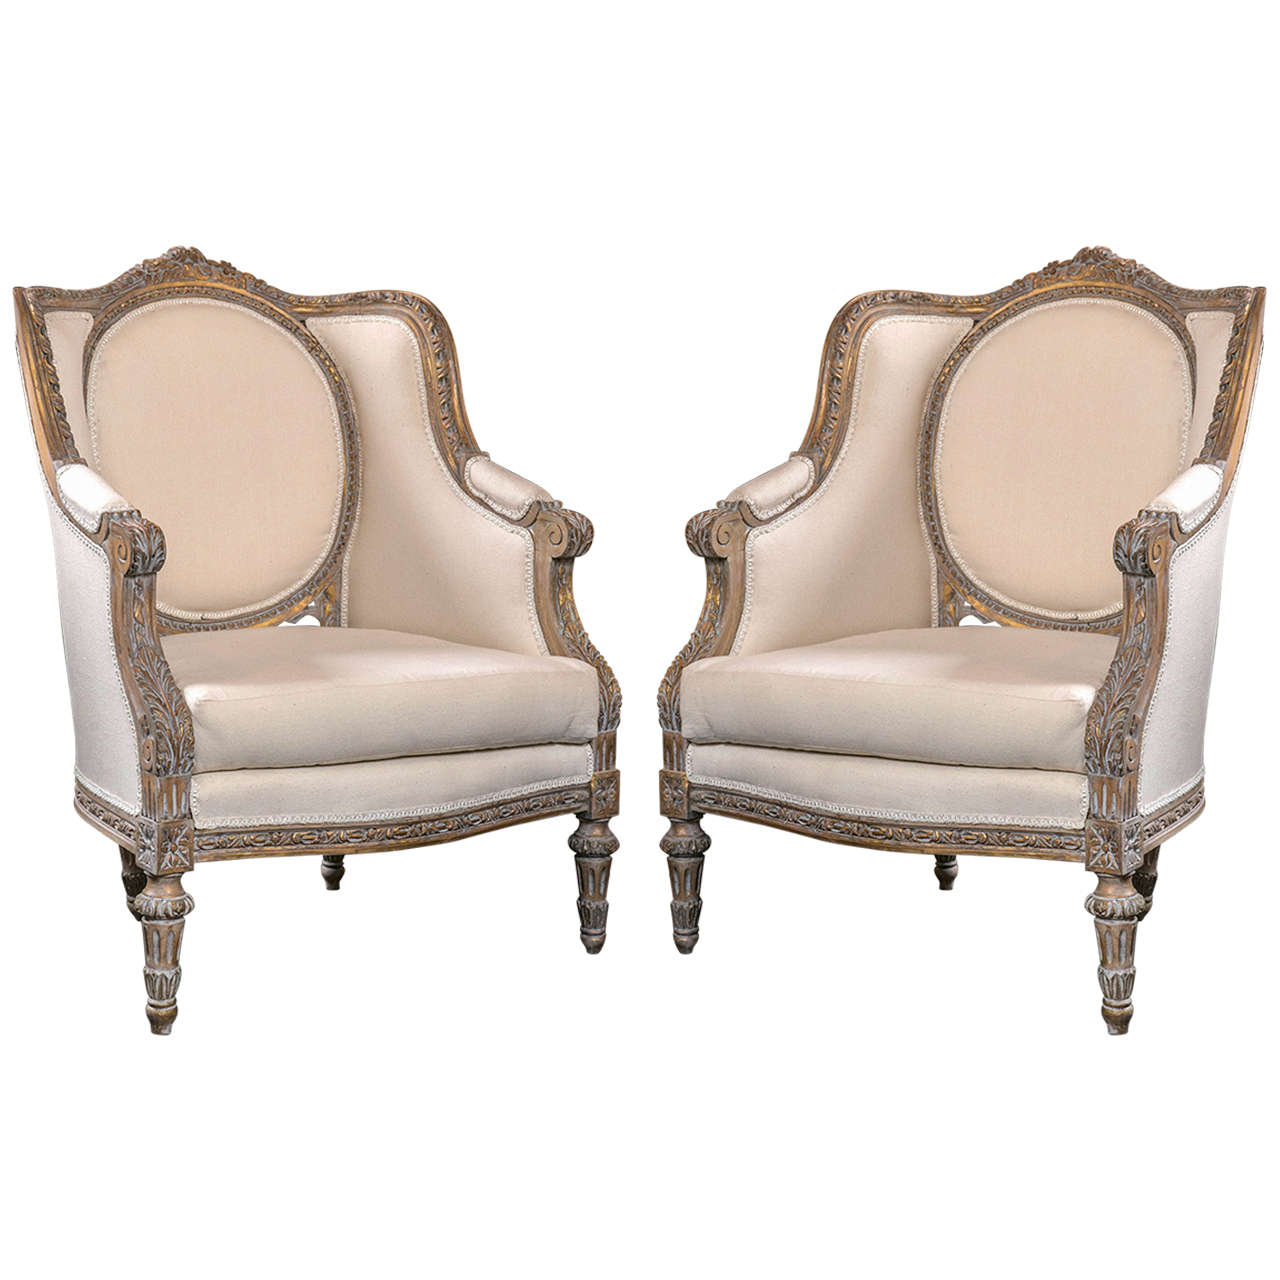 Pair Of Vintage French Louis XVI Style Bergere Chairs For Sale